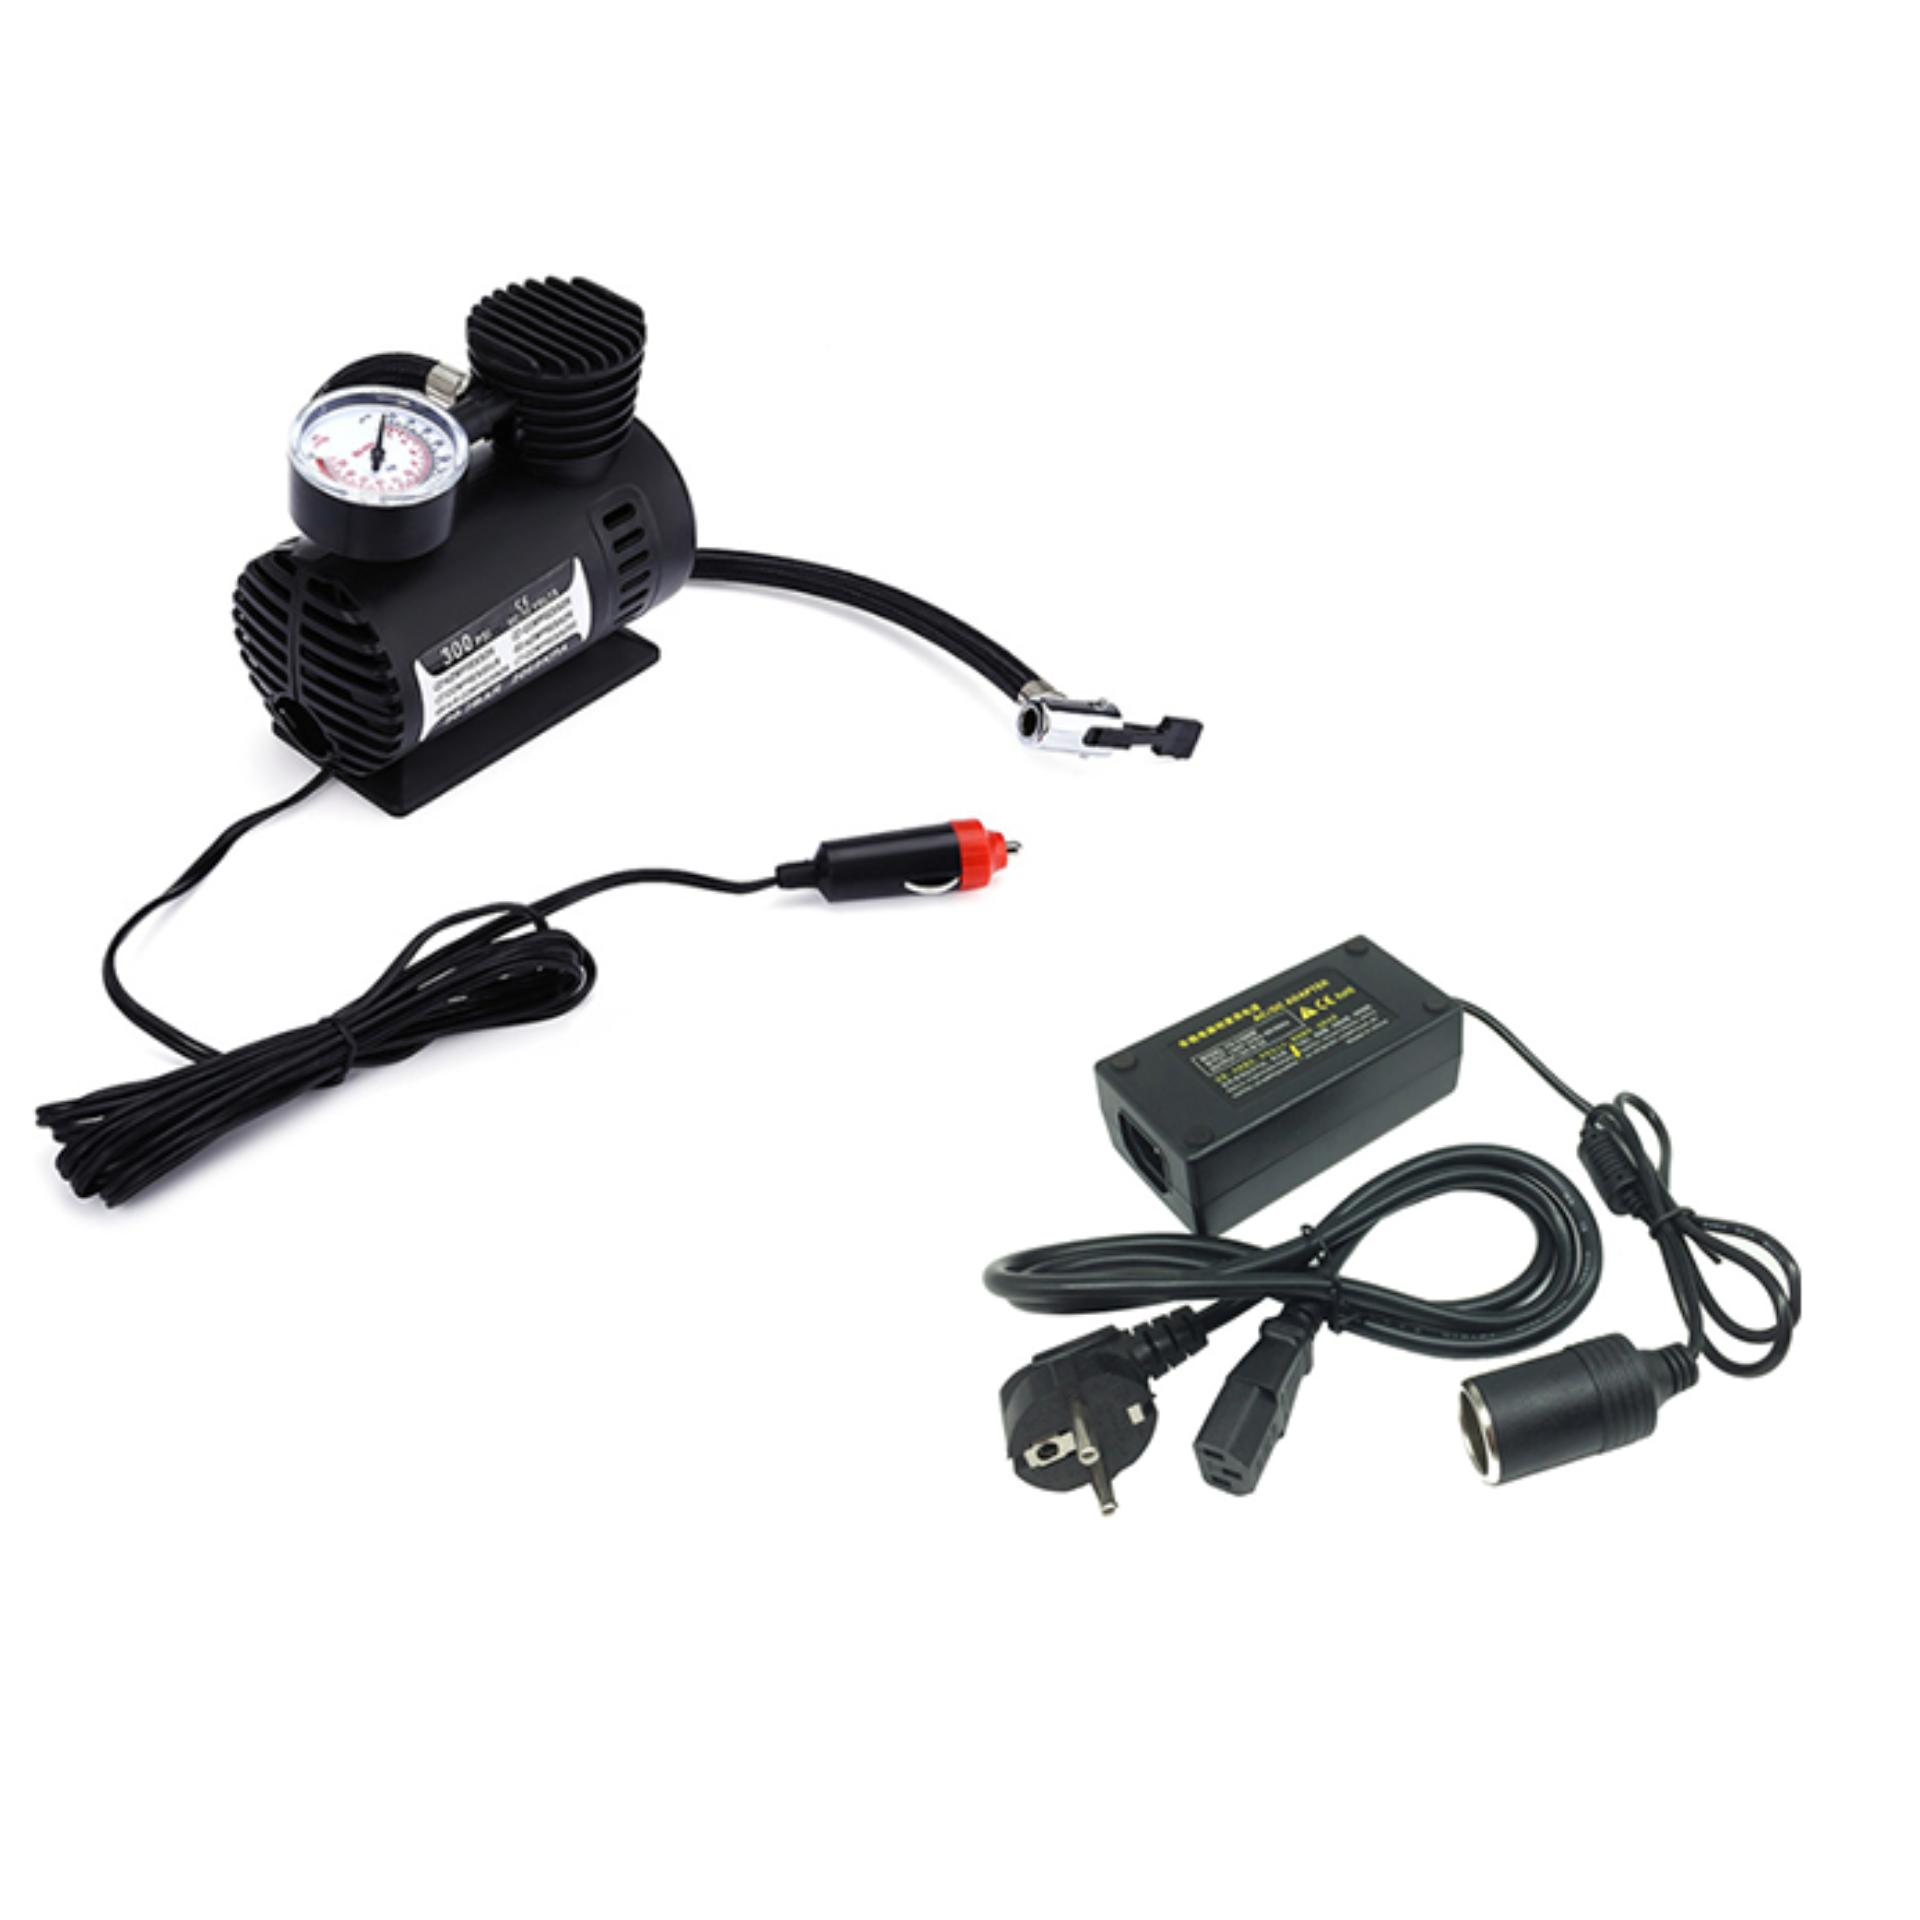 Car Air Conditioning For Sale Auto Online Brands Toyota Rav4 Temp Gauge Wiring Mini Dc 12v Electric Inflatable Pumping Pumps Compressor 300 Psi With Home Use 100v